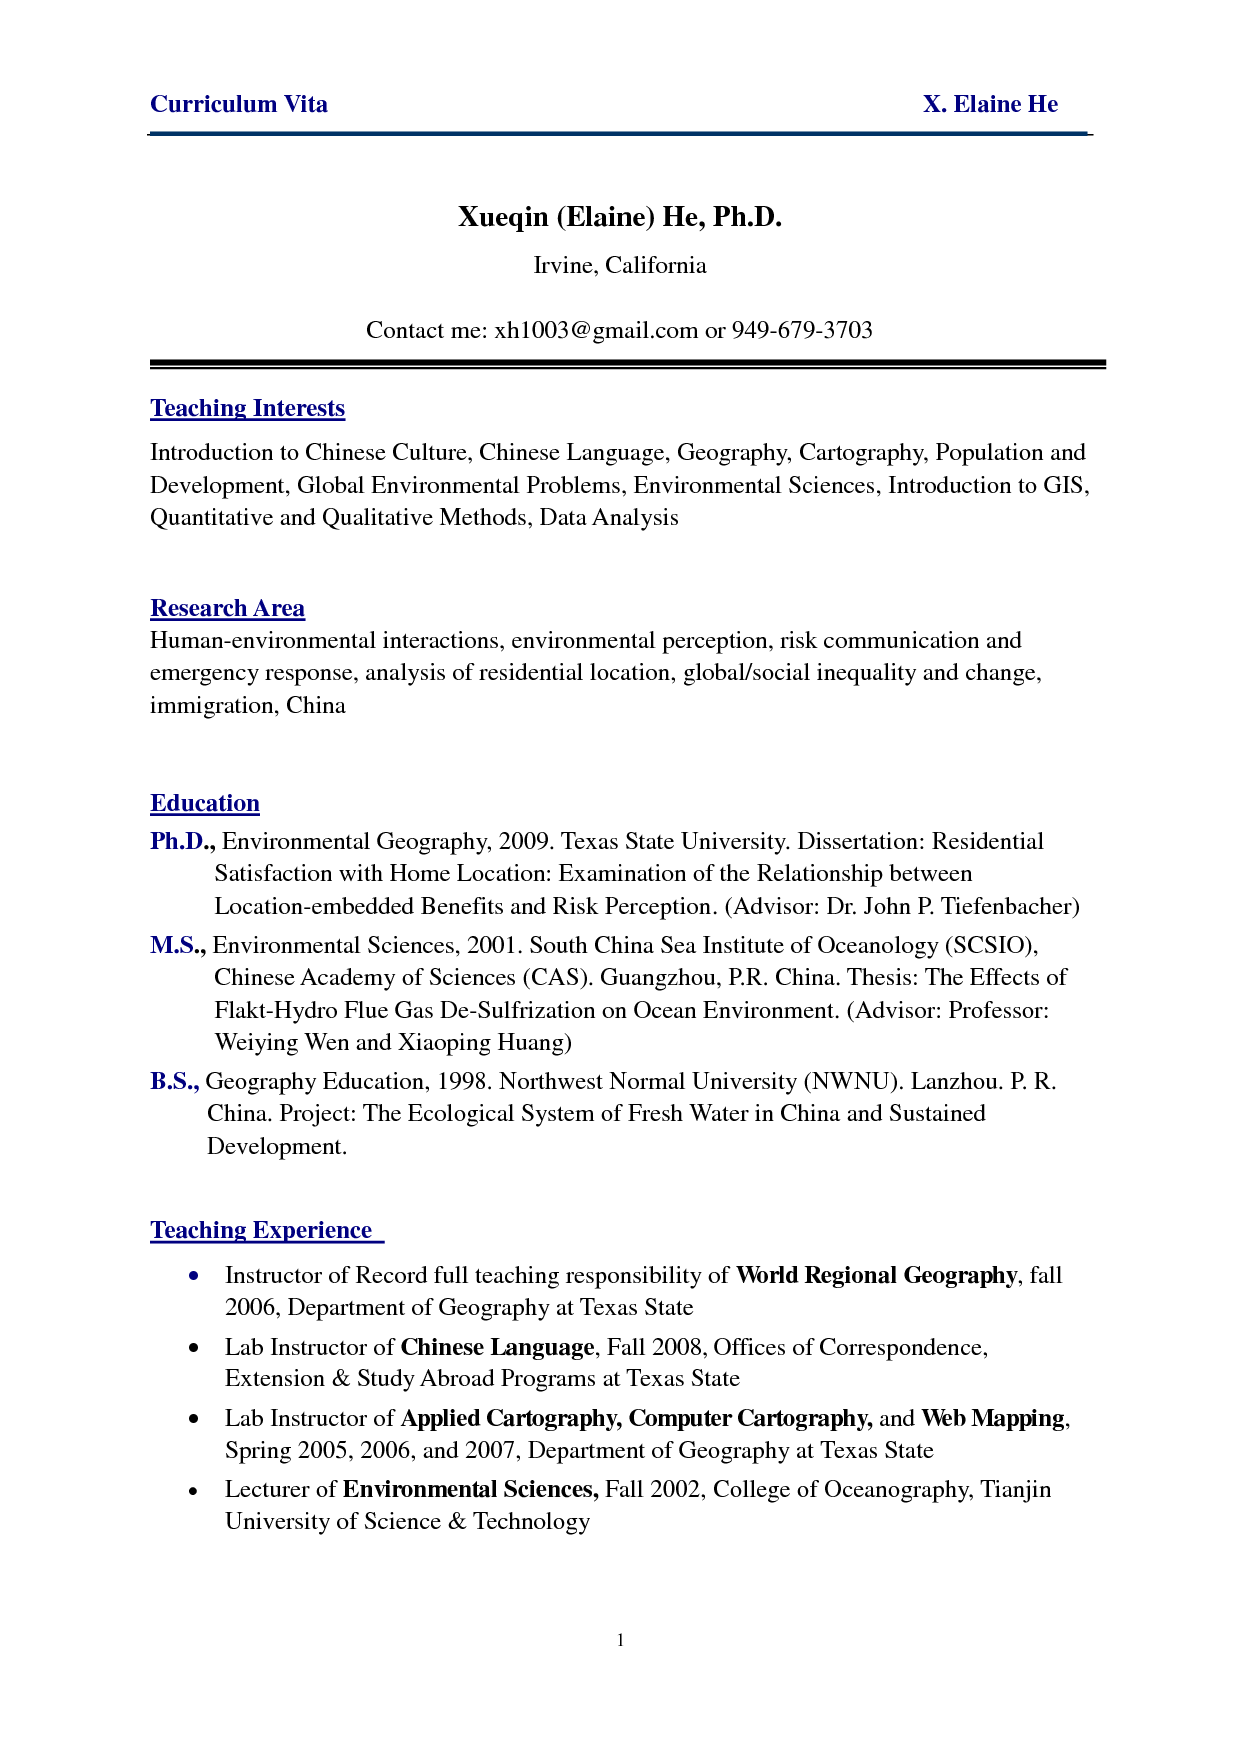 New Grad Lpn Resume Sample Nursing Hacked Pinterest Sample